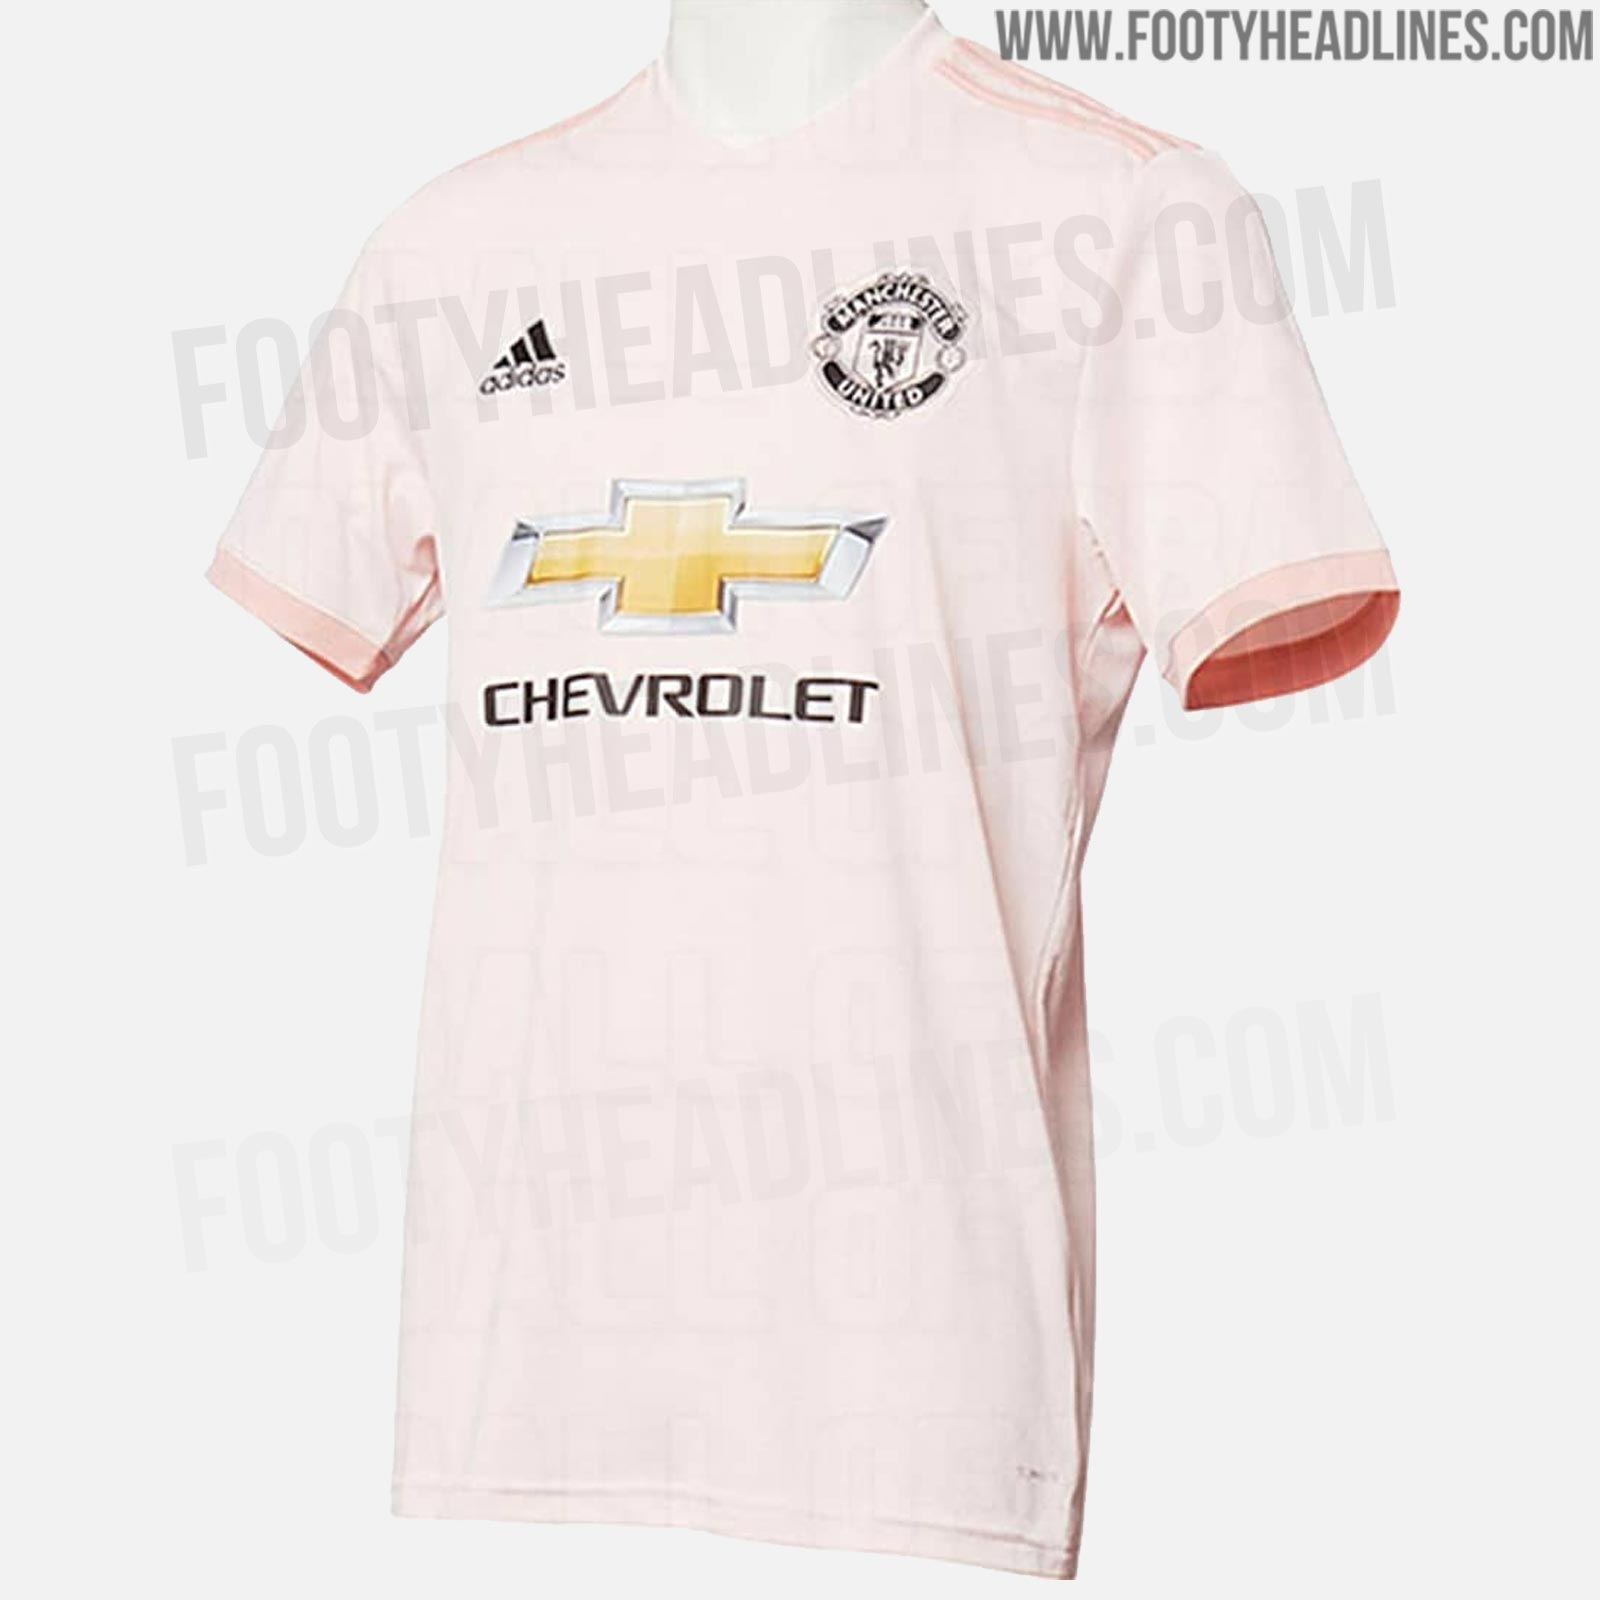 release date b26ef b0c3d PICS: Manchester United's new pink away shirt has been ...